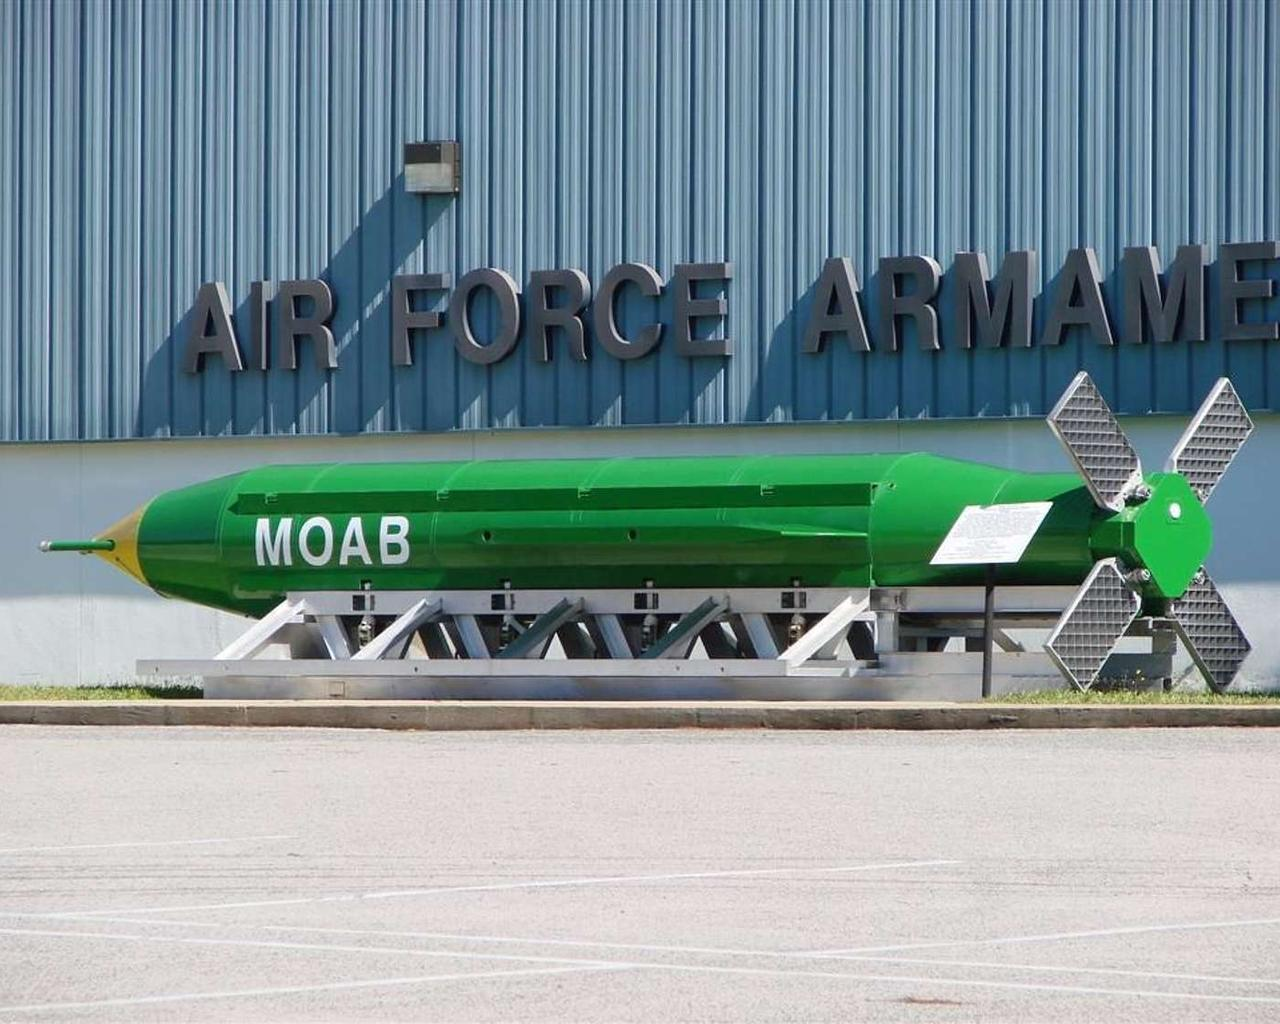 China Claims To Have Their Own MOAB—Is It More Fiction Than Fact?